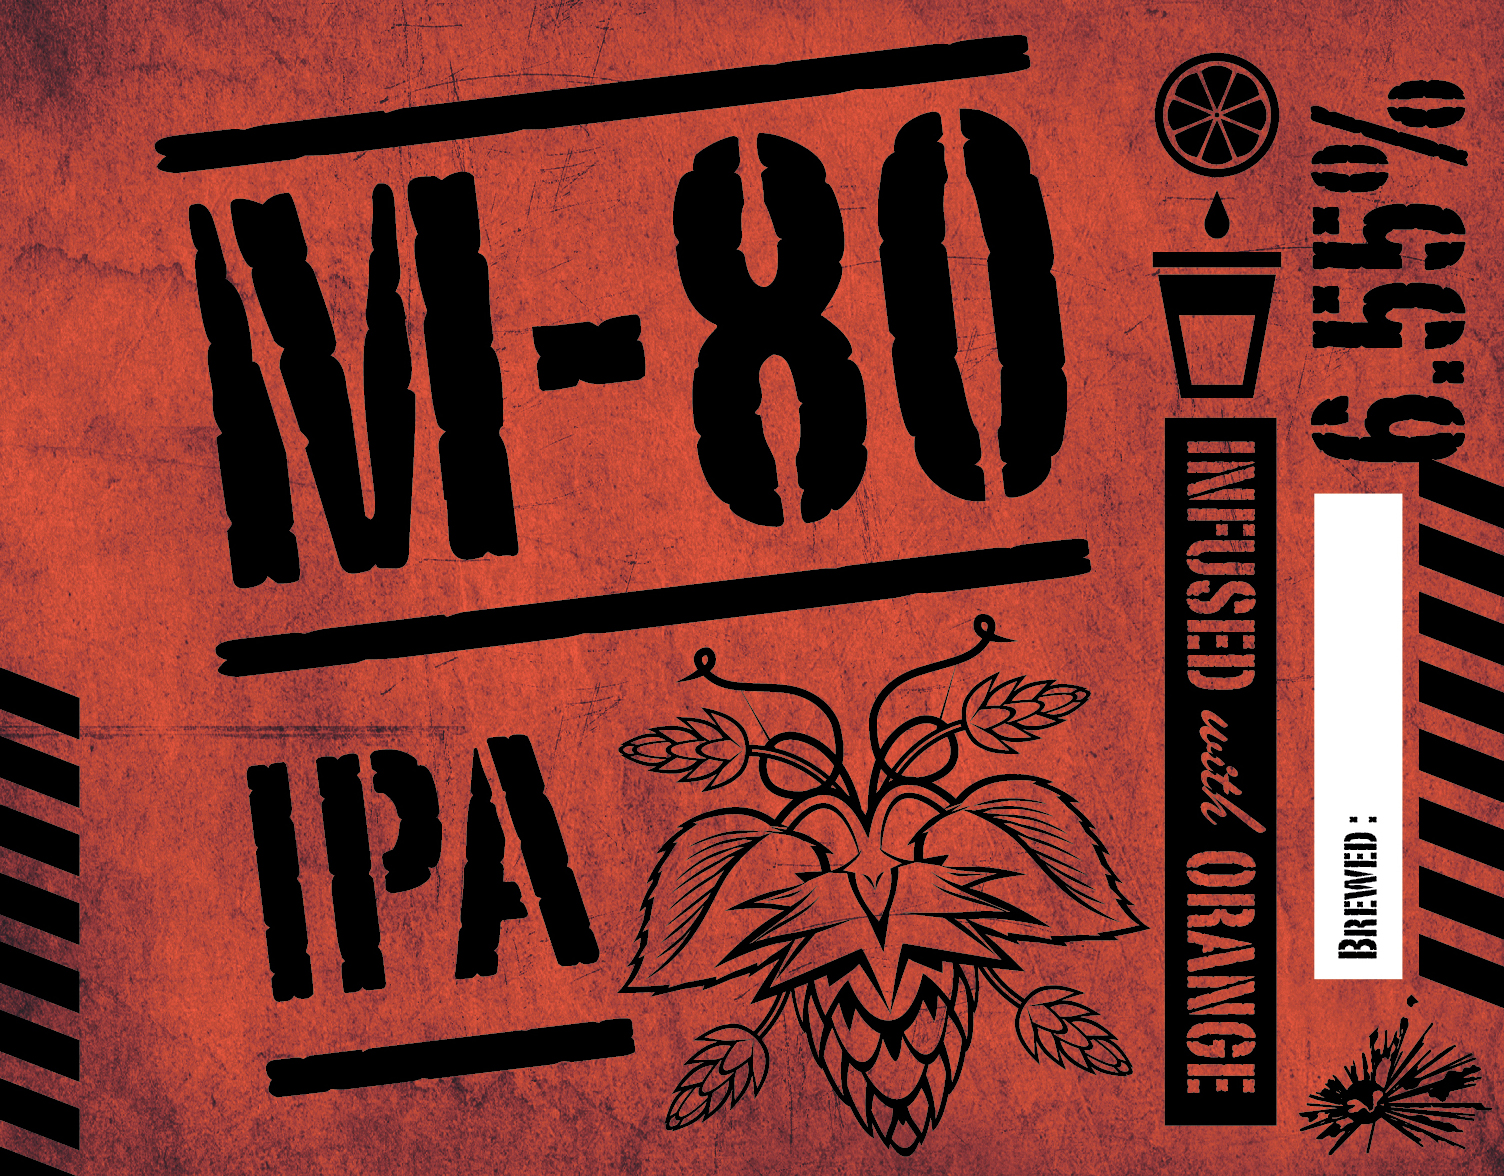 M-80 IPA - GrogTag Kit Label